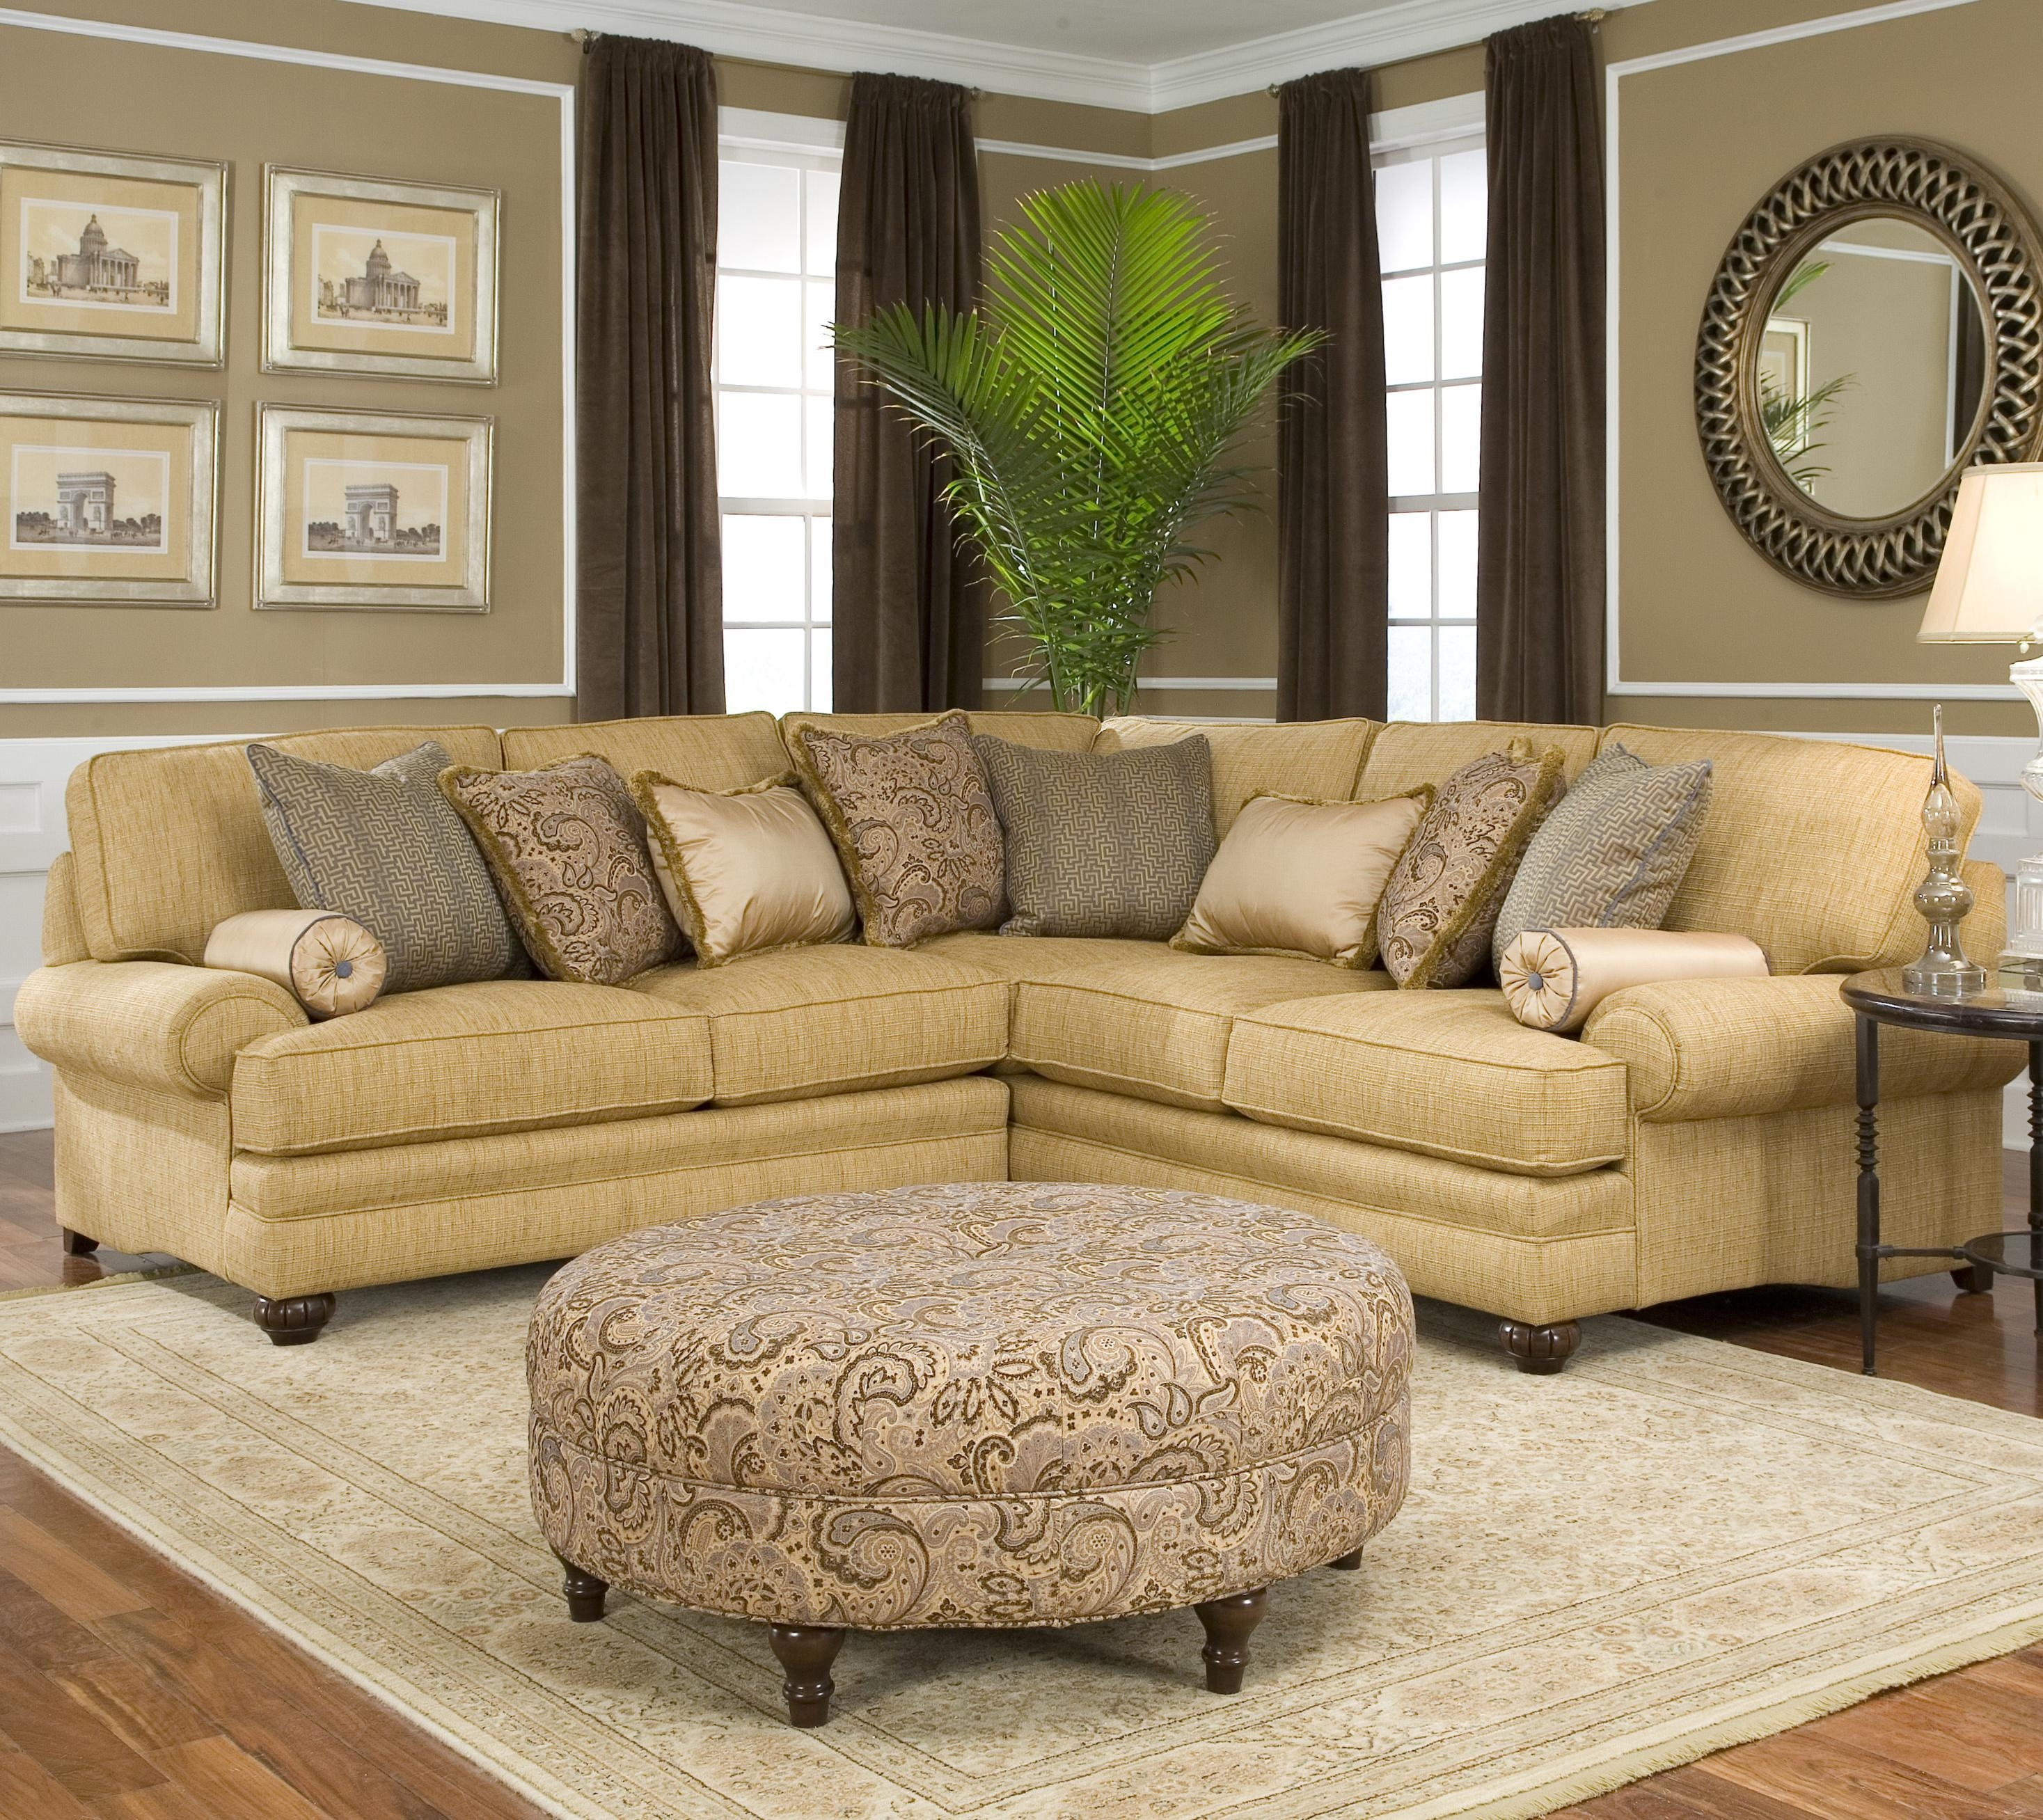 Traditional Styled Corner Sectional Sofasmith Brothers | Wolf For Smith Brothers Sofas (View 18 of 20)